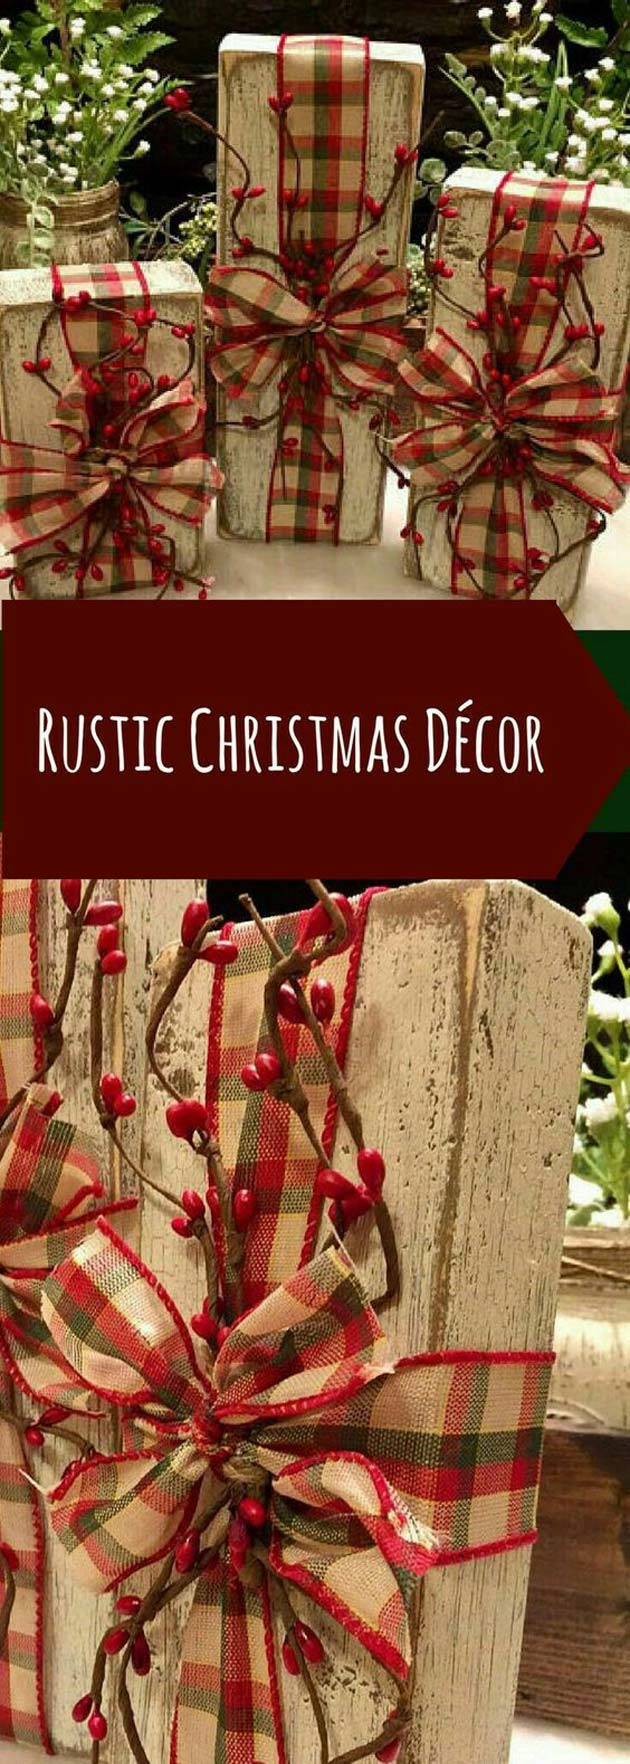 Country Home Holiday Decorating Ideas